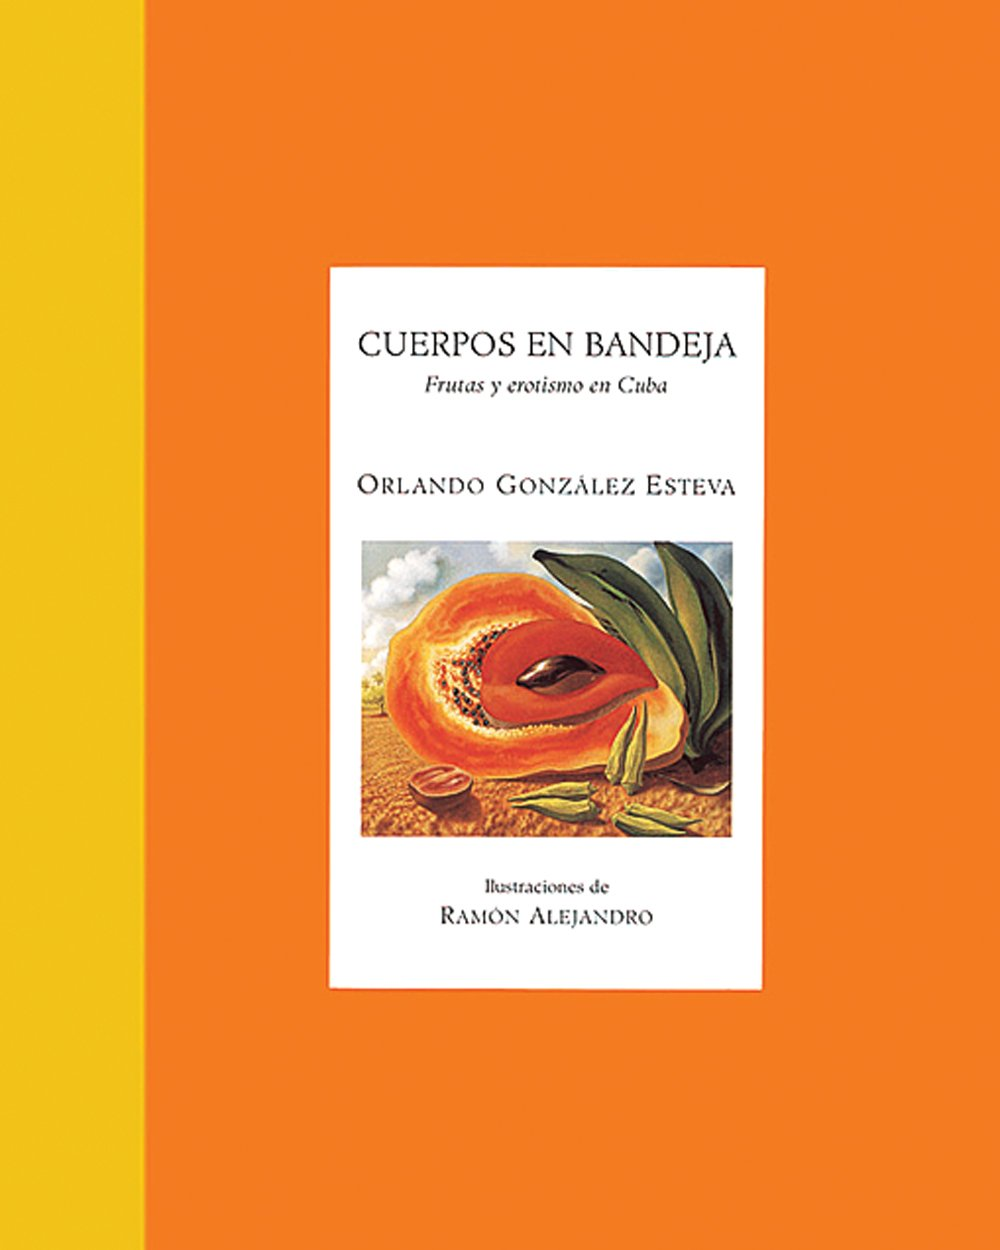 Cuerpos en bandeja: Frutas y erotismo en Cuba (A Carnal Platter: Fruit and Eroticism in Cuba) (Libros de la Espiral / Books of the Spiral) (Spanish ...